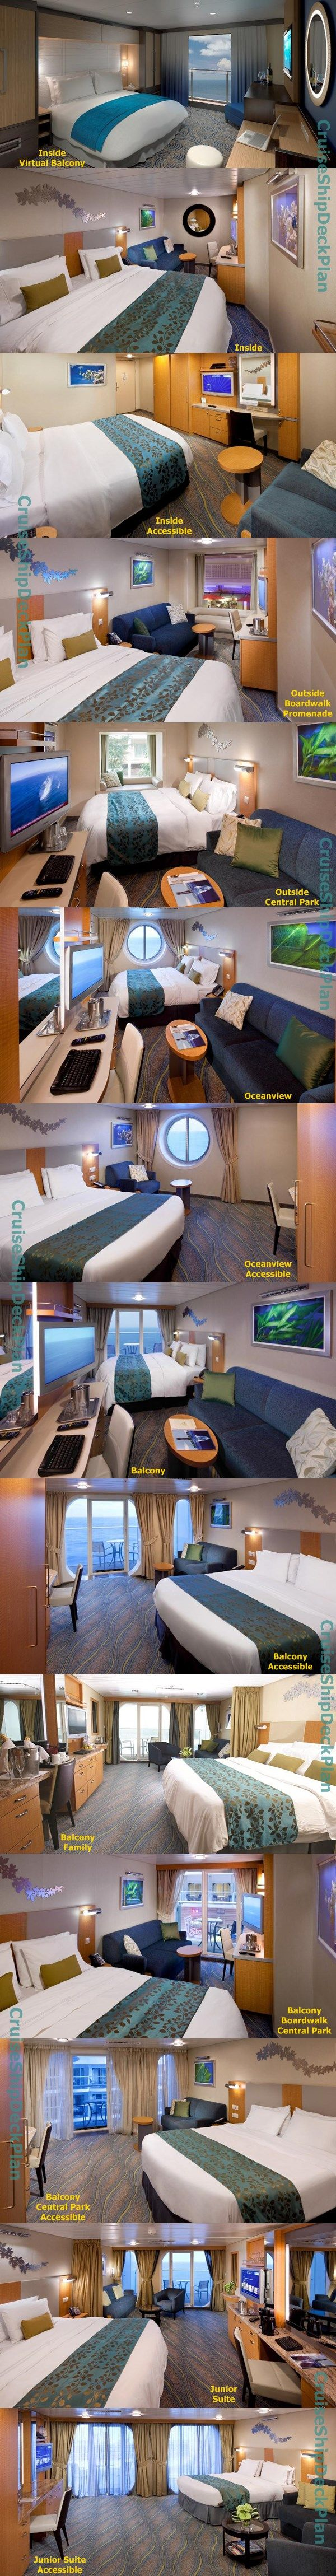 Royal Caribbean Allure of the Seas cabins photos